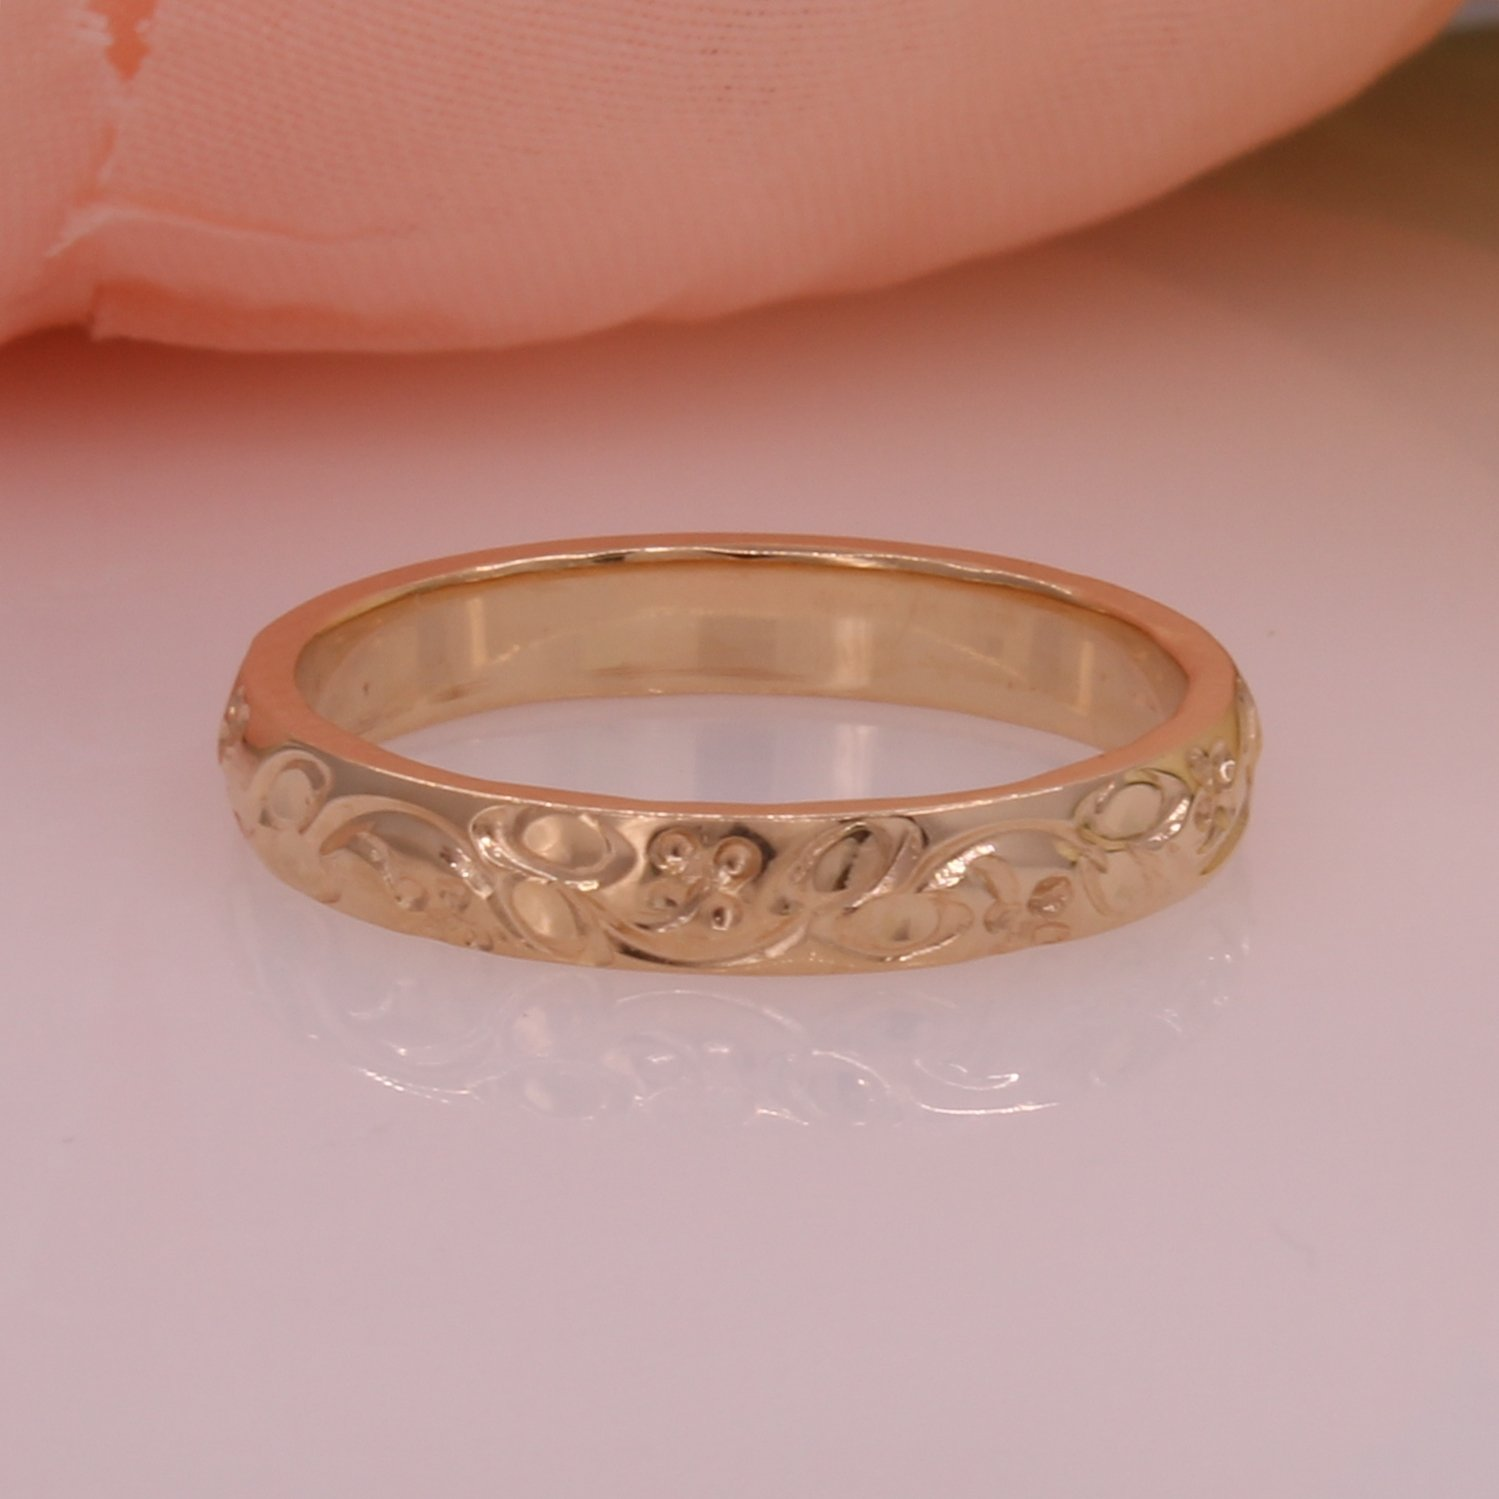 14ky Fancy Engraved Band 3mm Size 5.75